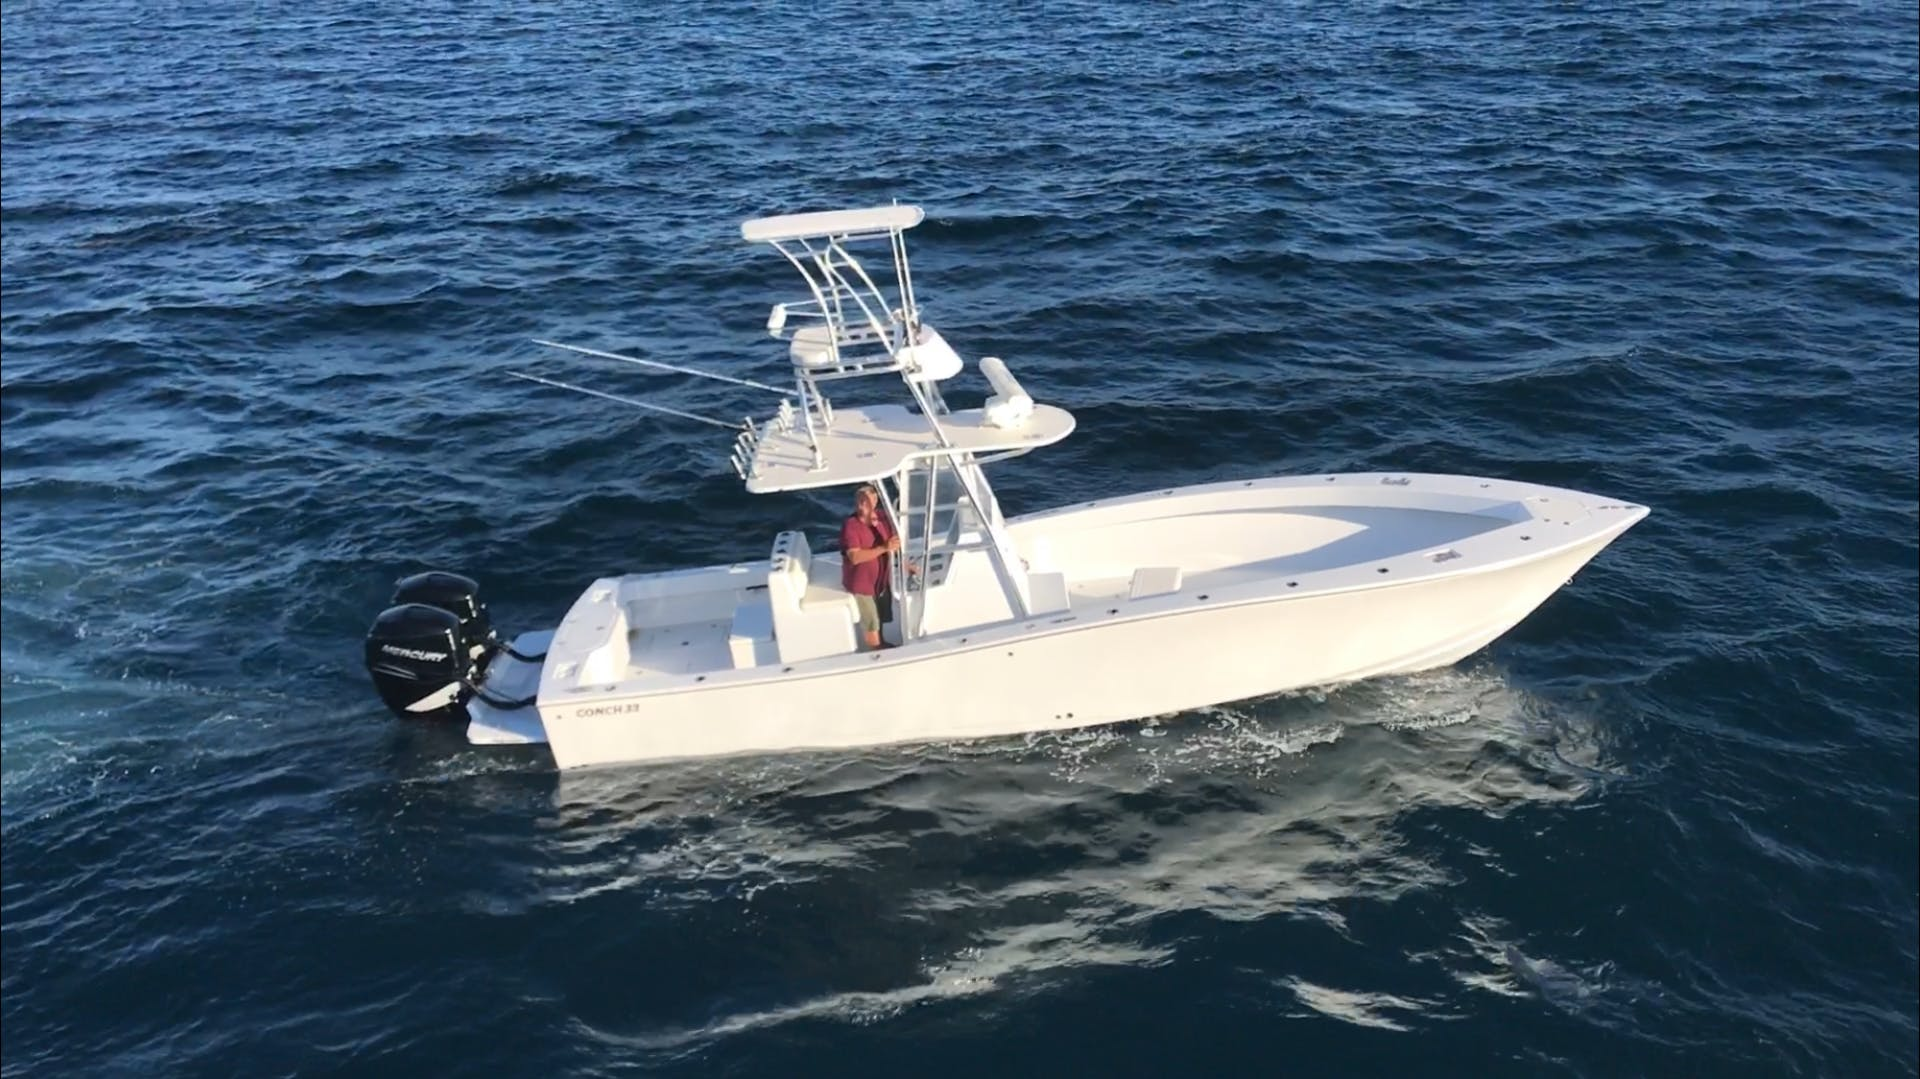 2017 Conch 33' 33 Center Console 33 Center Console | Picture 1 of 11